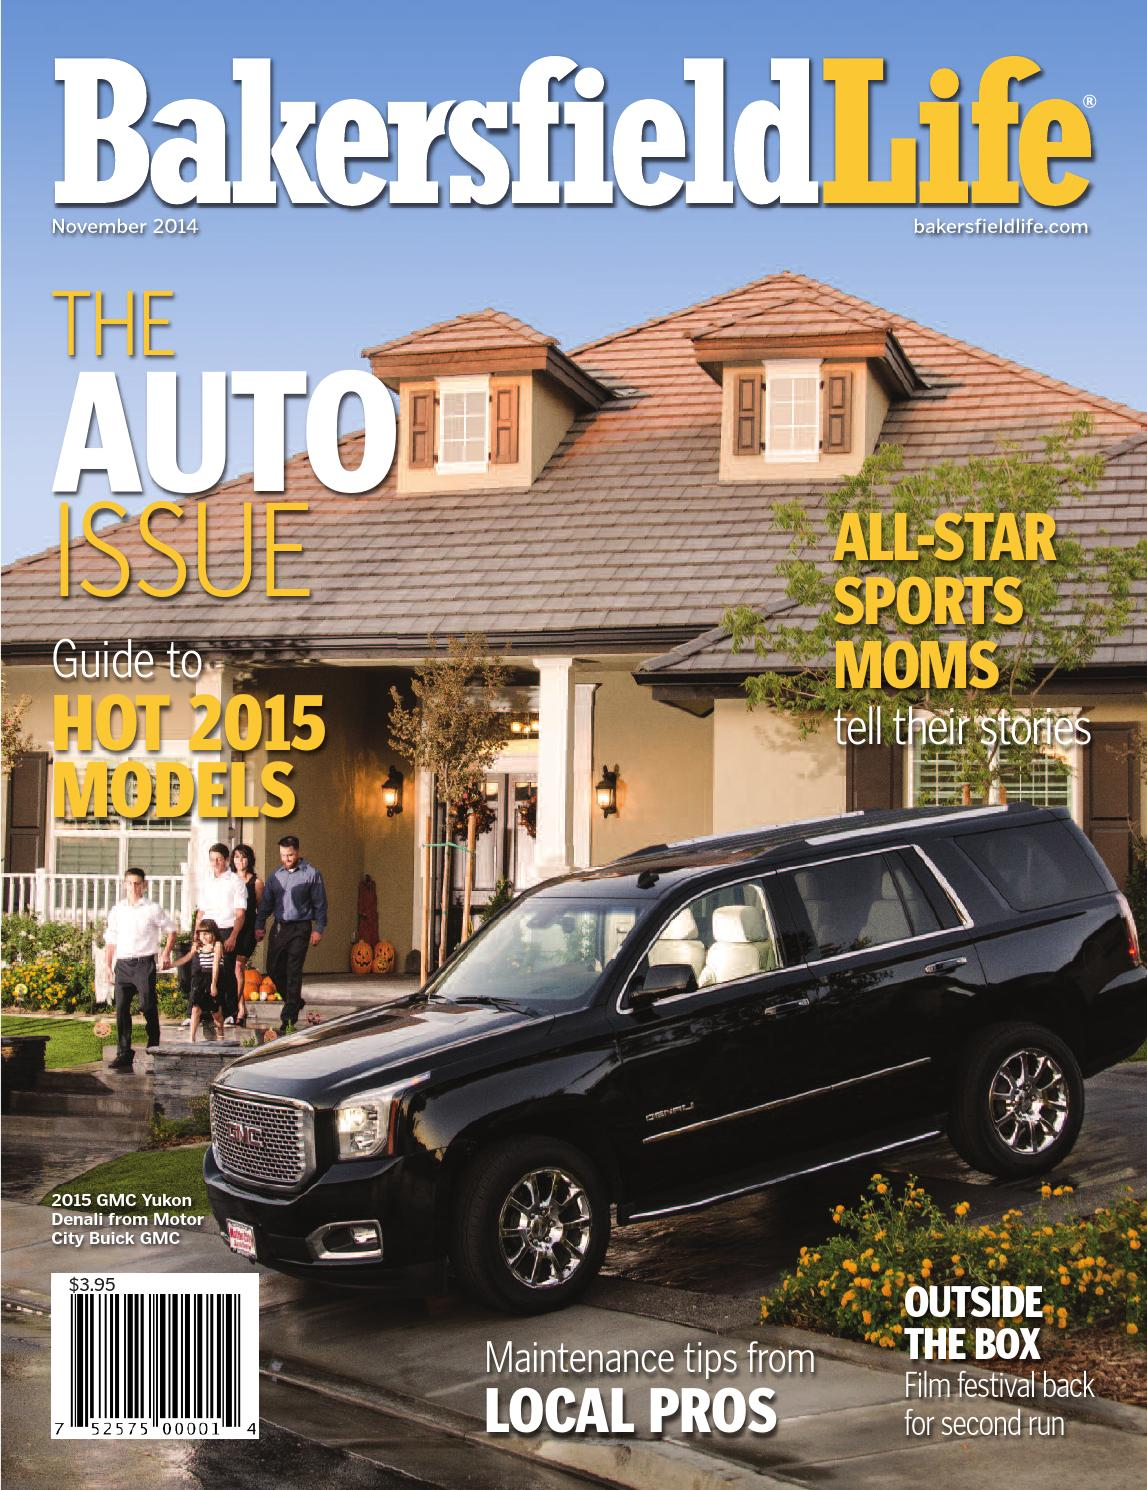 Bakersfield Life Magazine November 2014 By Tbc Media Specialty Jeep Patriot Fuse Box Cavity Numbers Publications Issuu